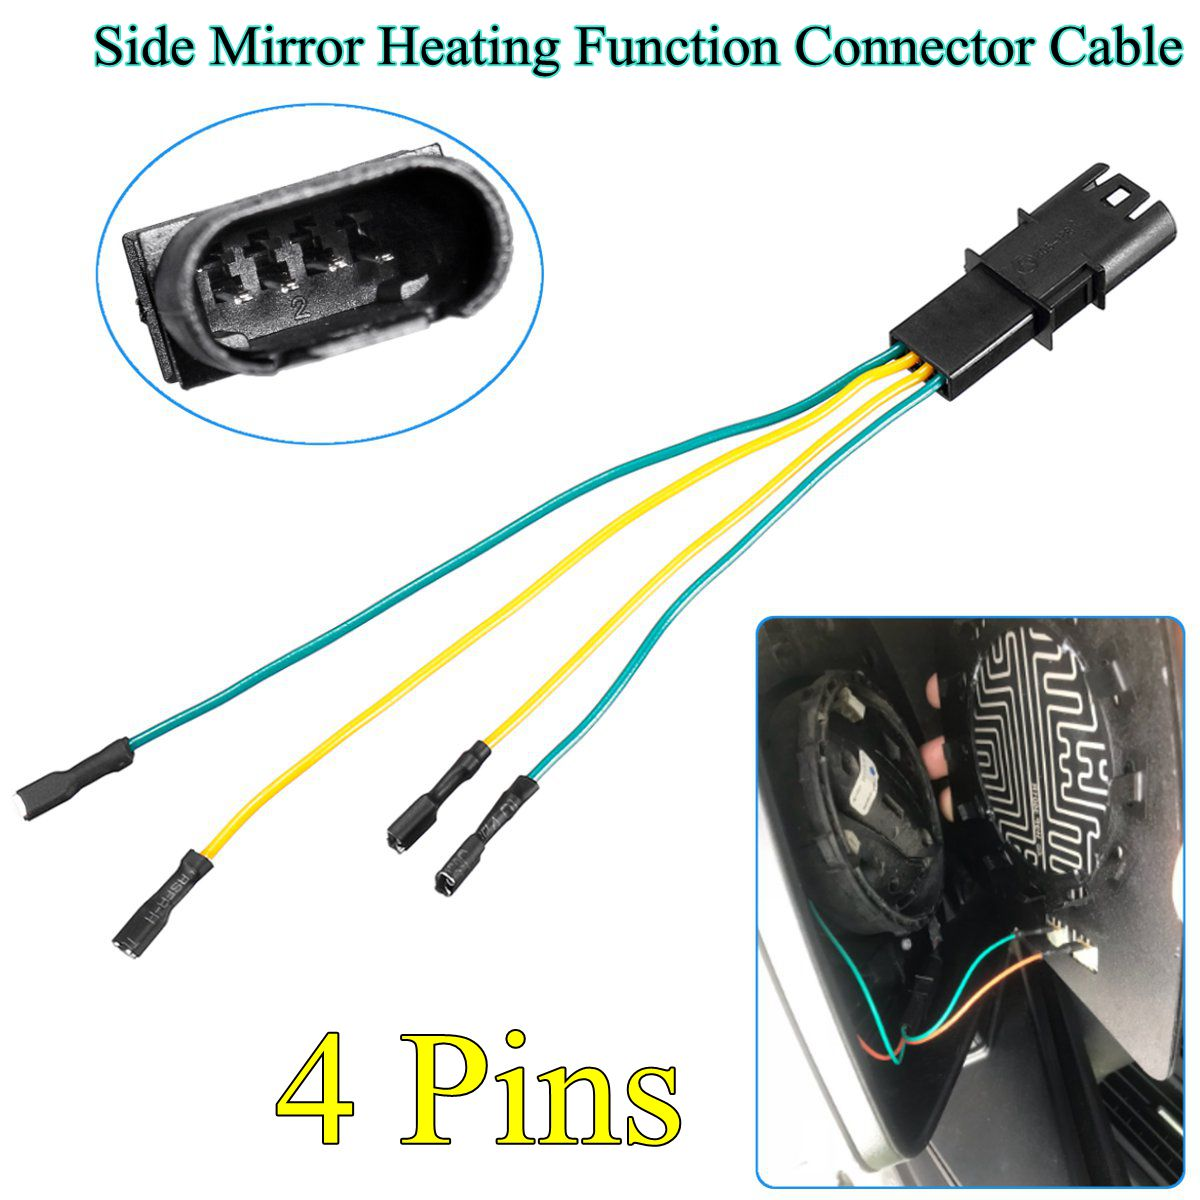 12v Side Mirror Heating Function Connector Cable Wire For Bmw Sale Acb Wiring Shipping Methods